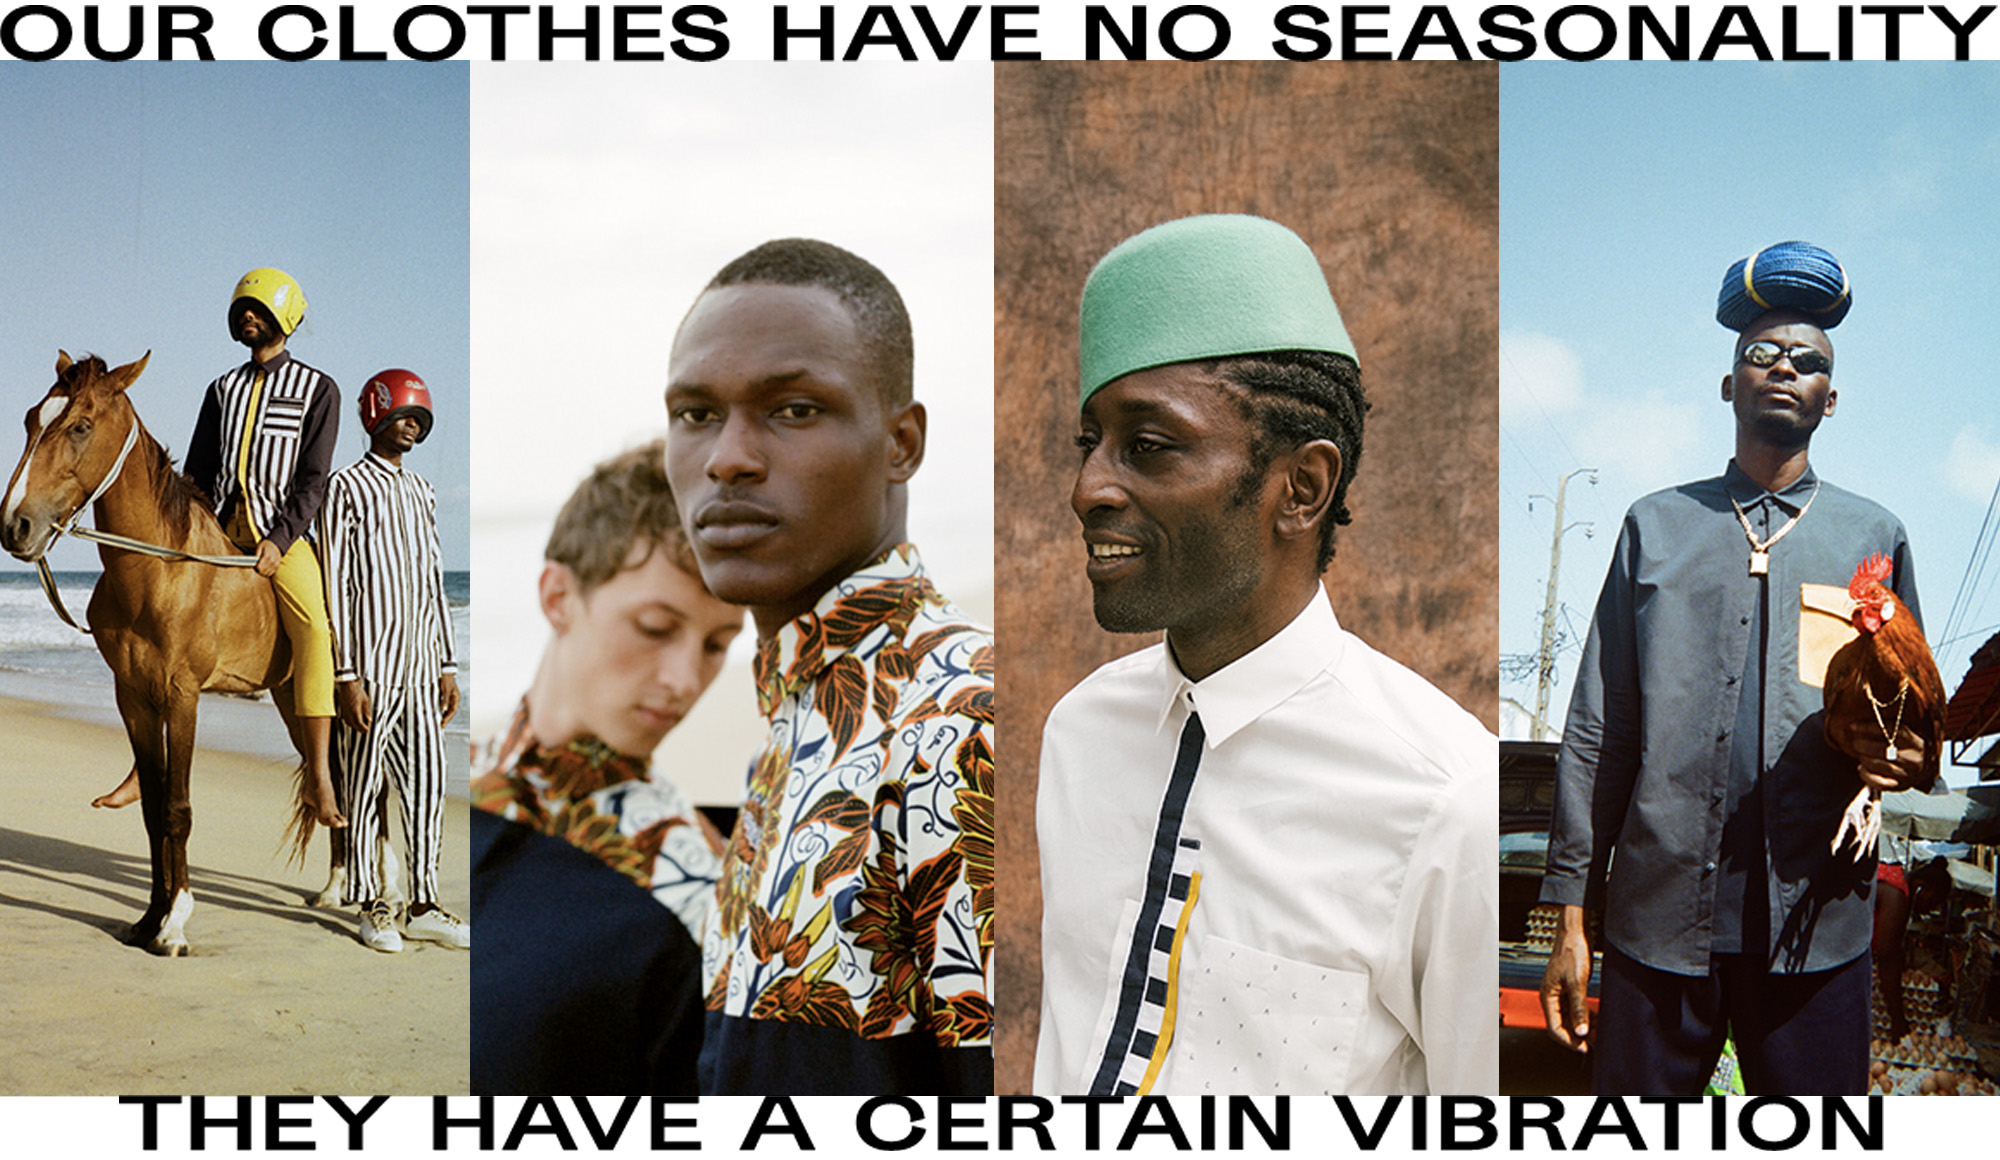 Our clothes have no seasonality they have a certain vibration